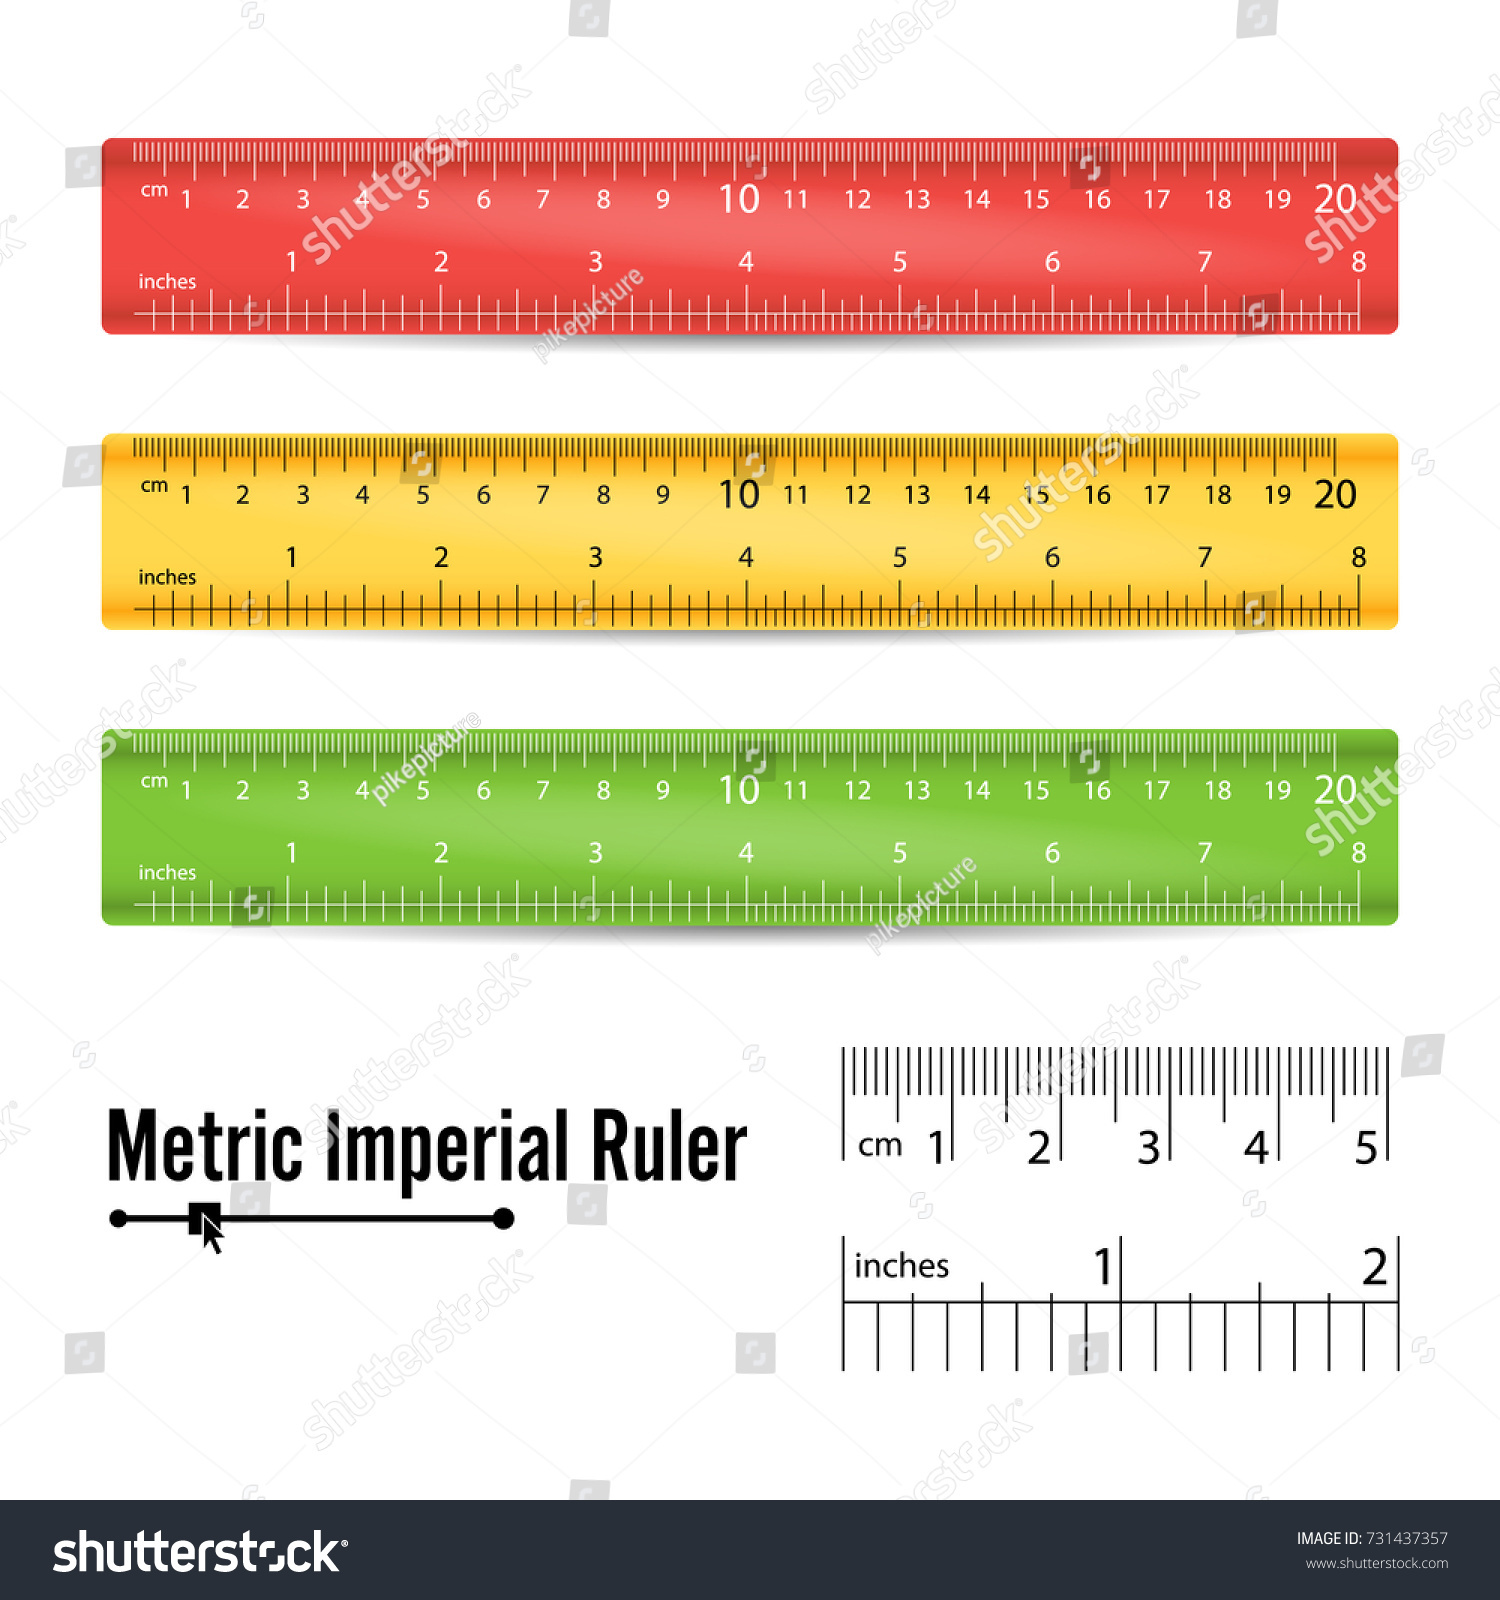 worksheet Measuring Centimeters school measuring ruler vector measure tool stock 731437357 millimeters centimeters and inches scale isolated